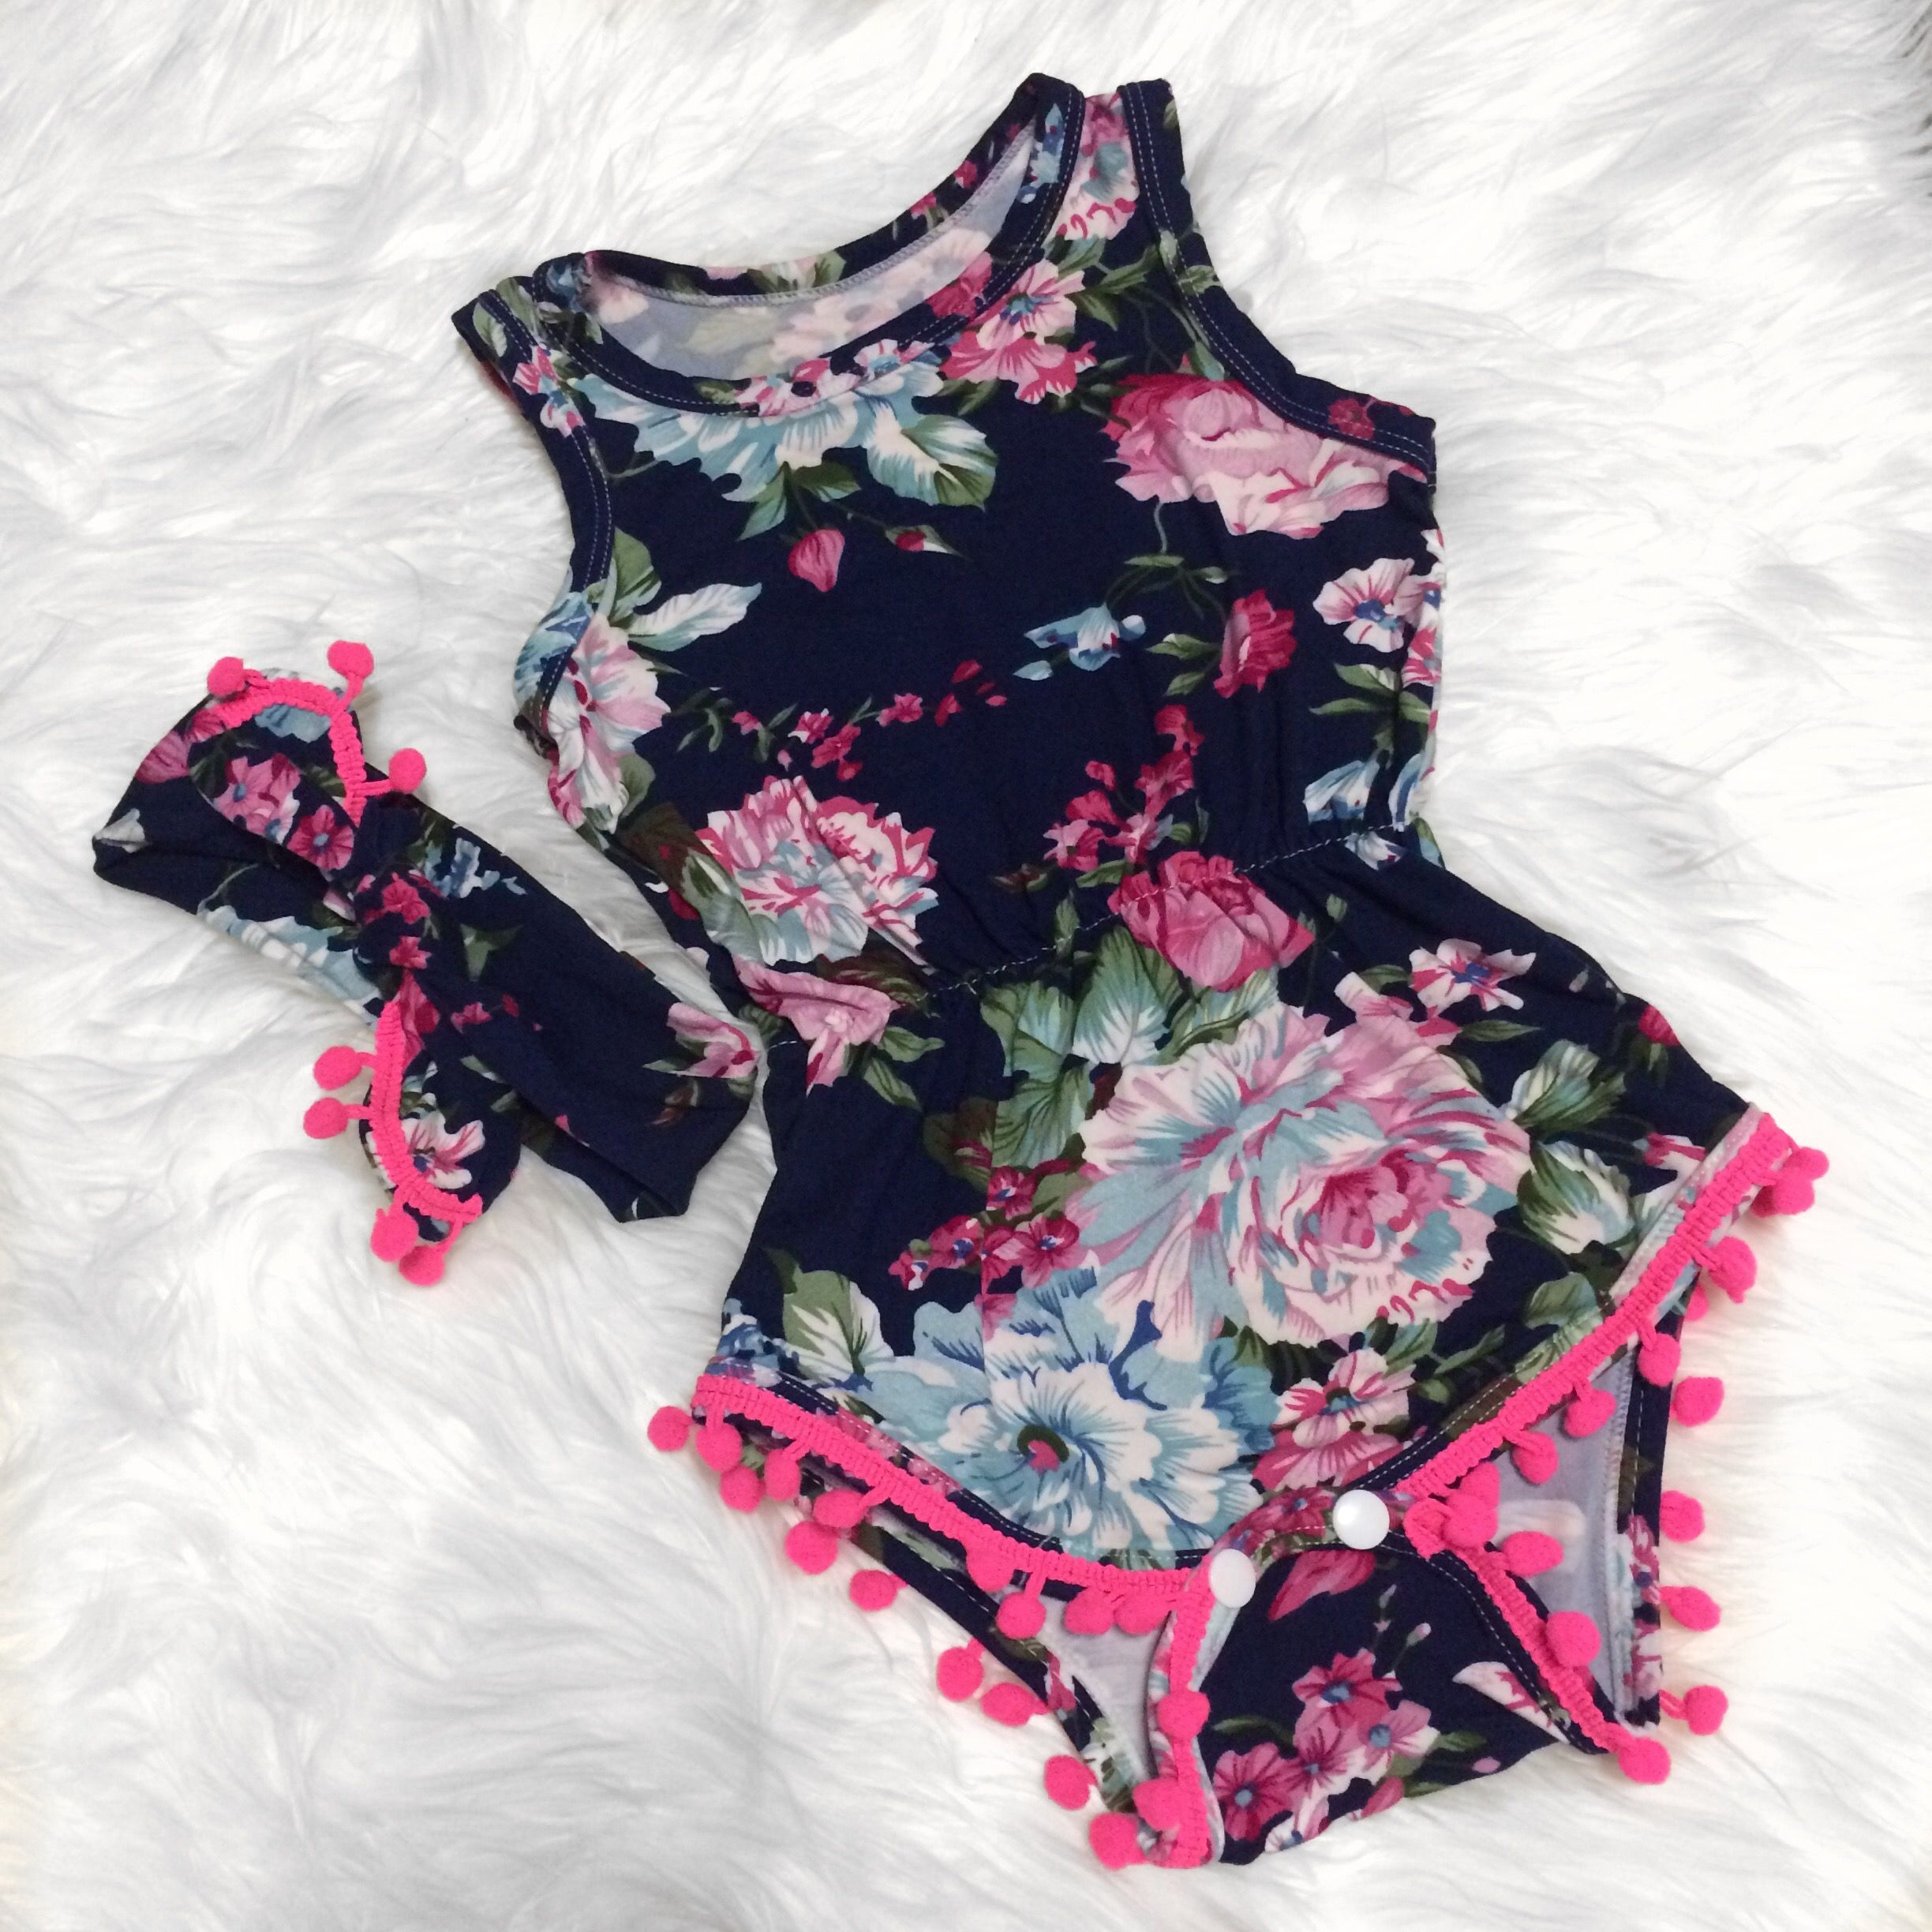 Our Fancy Floral Pom Pom Romper & Headband Set is a must have for